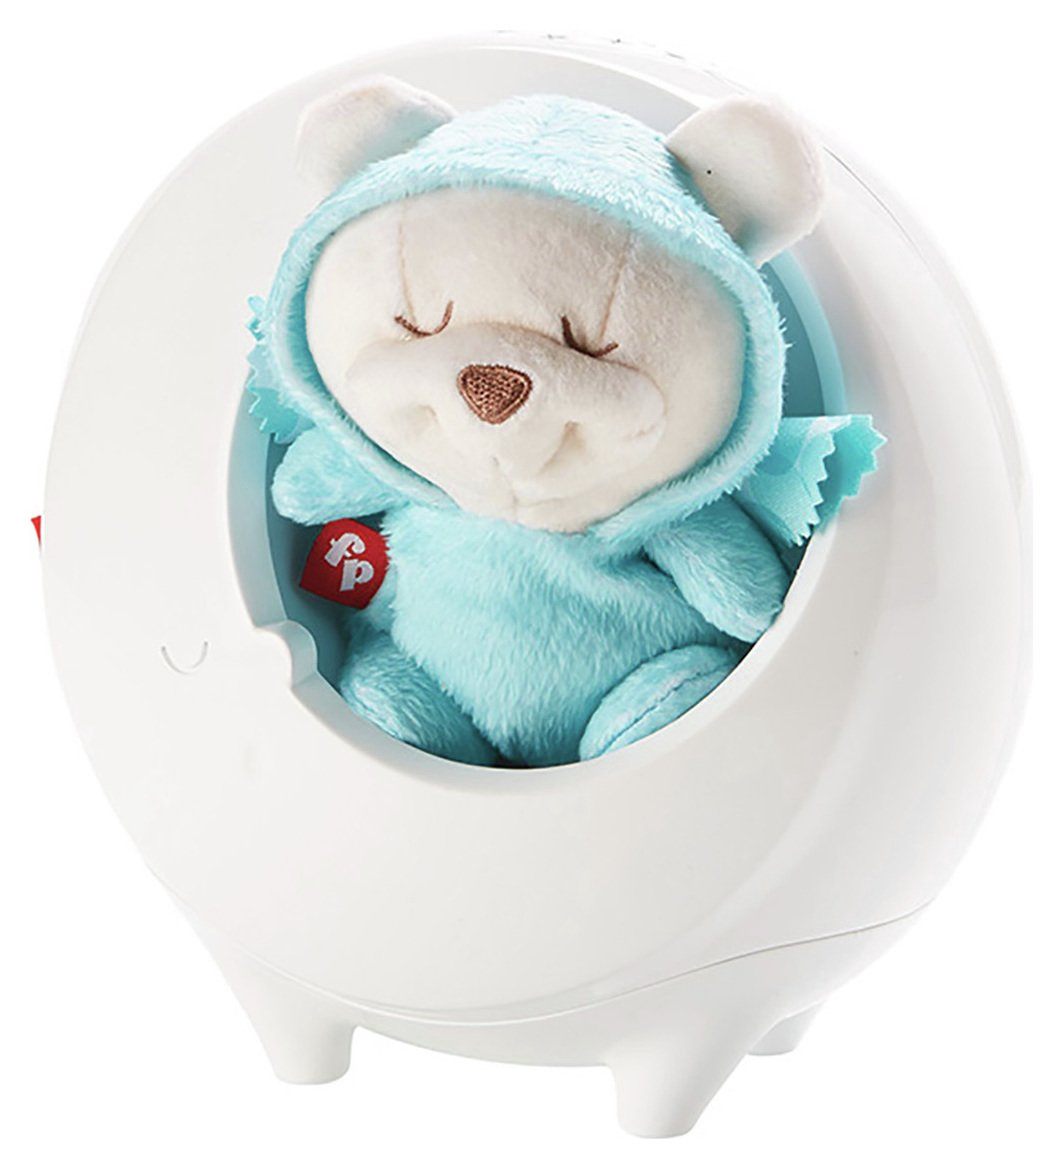 fisherprice butterfly dreams 2in1 soother